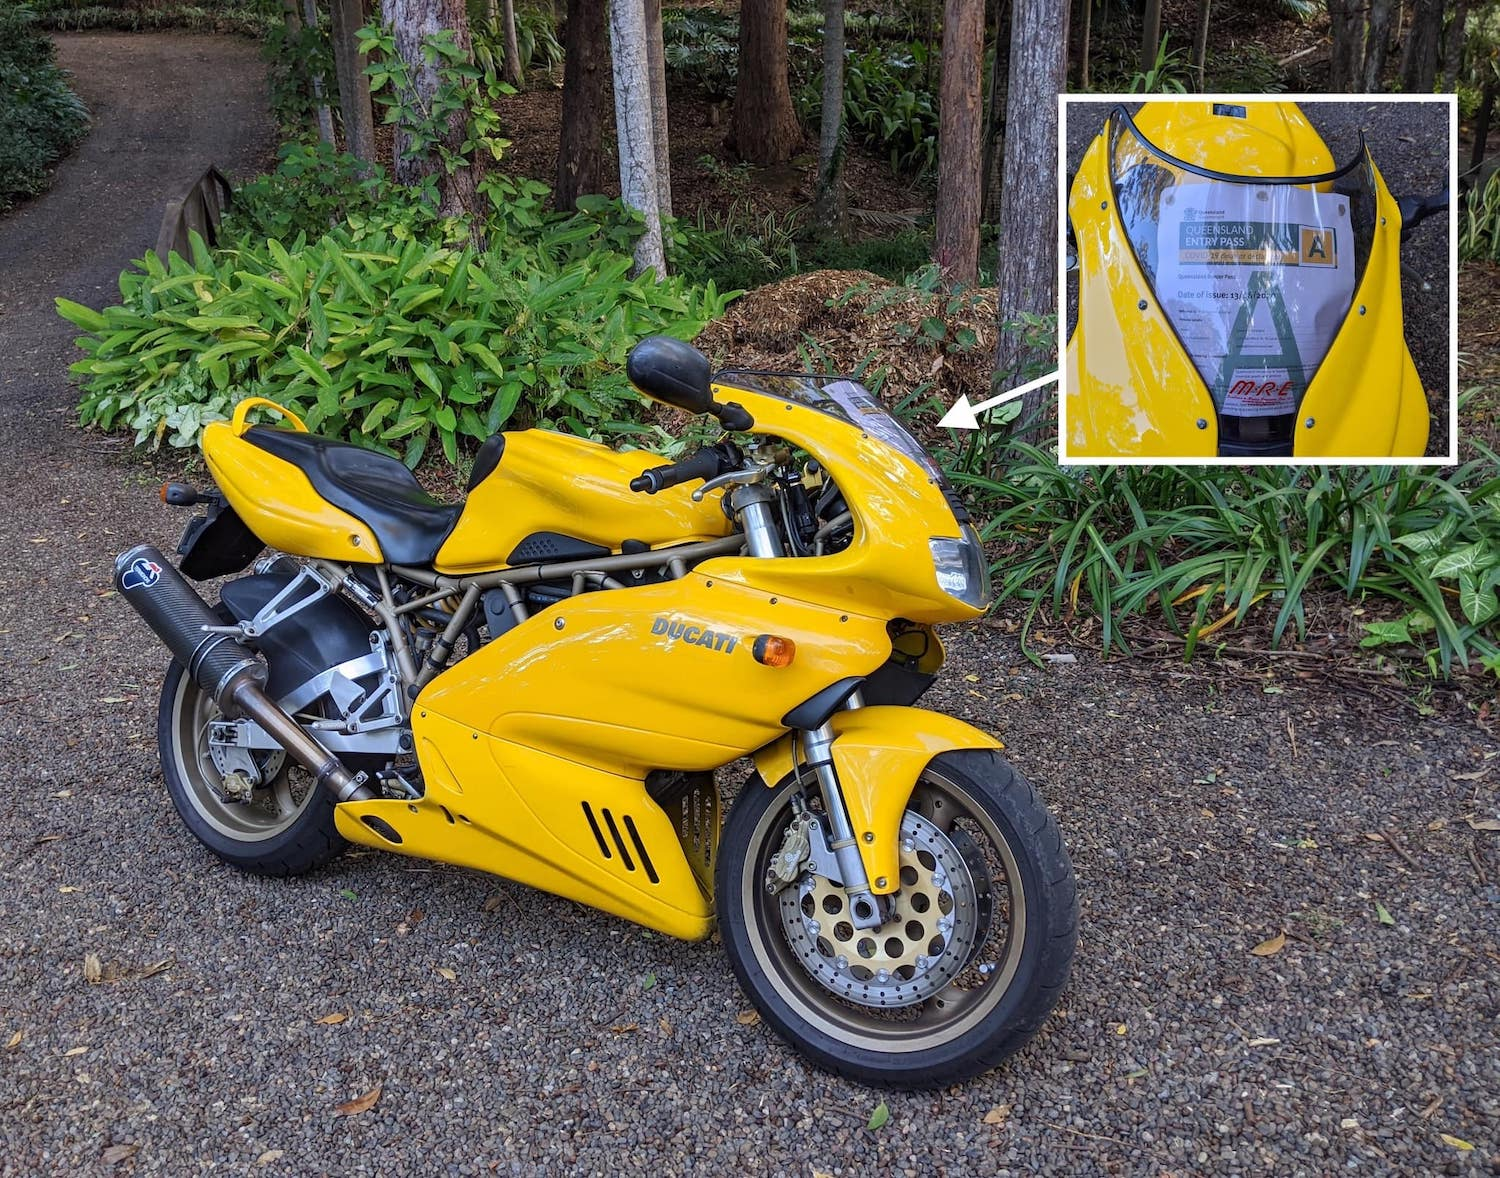 Yellow Ducati motorcycle with Queensland COVID-19 entry pass